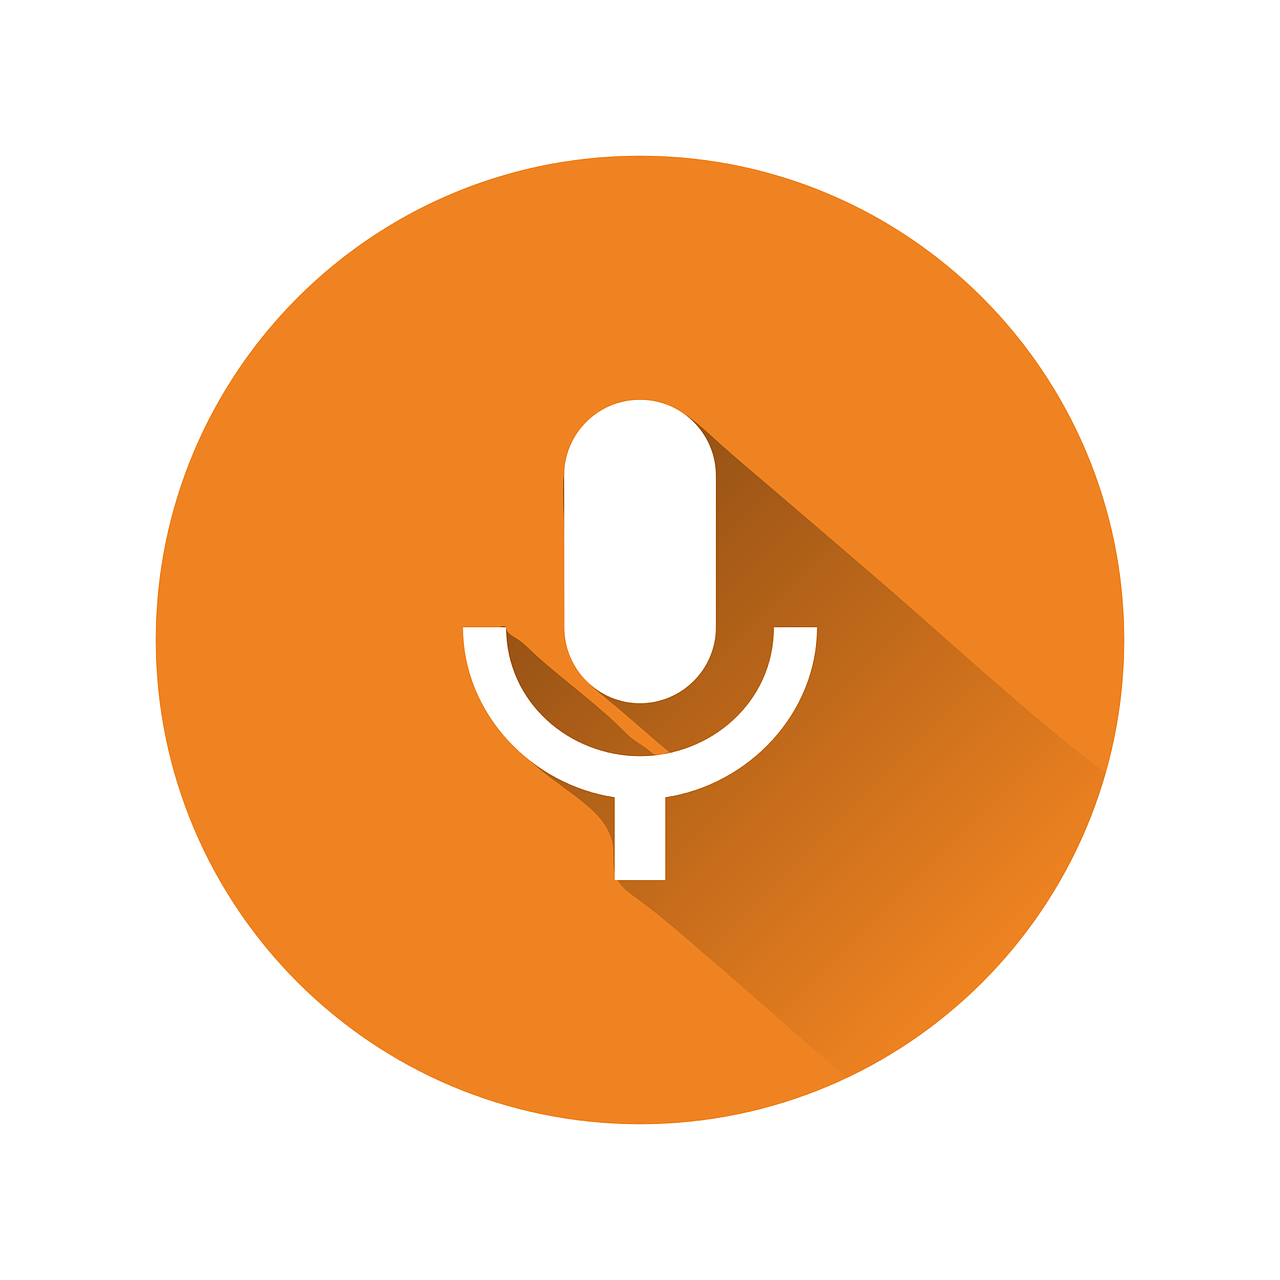 TrANSCRIPTION - Grab your headphones and listen to the audio, write down what you're hearing and make money. Verified websites and leading within this field. Some people actually live off transcribing. however you can make a decent amount of money out of it.